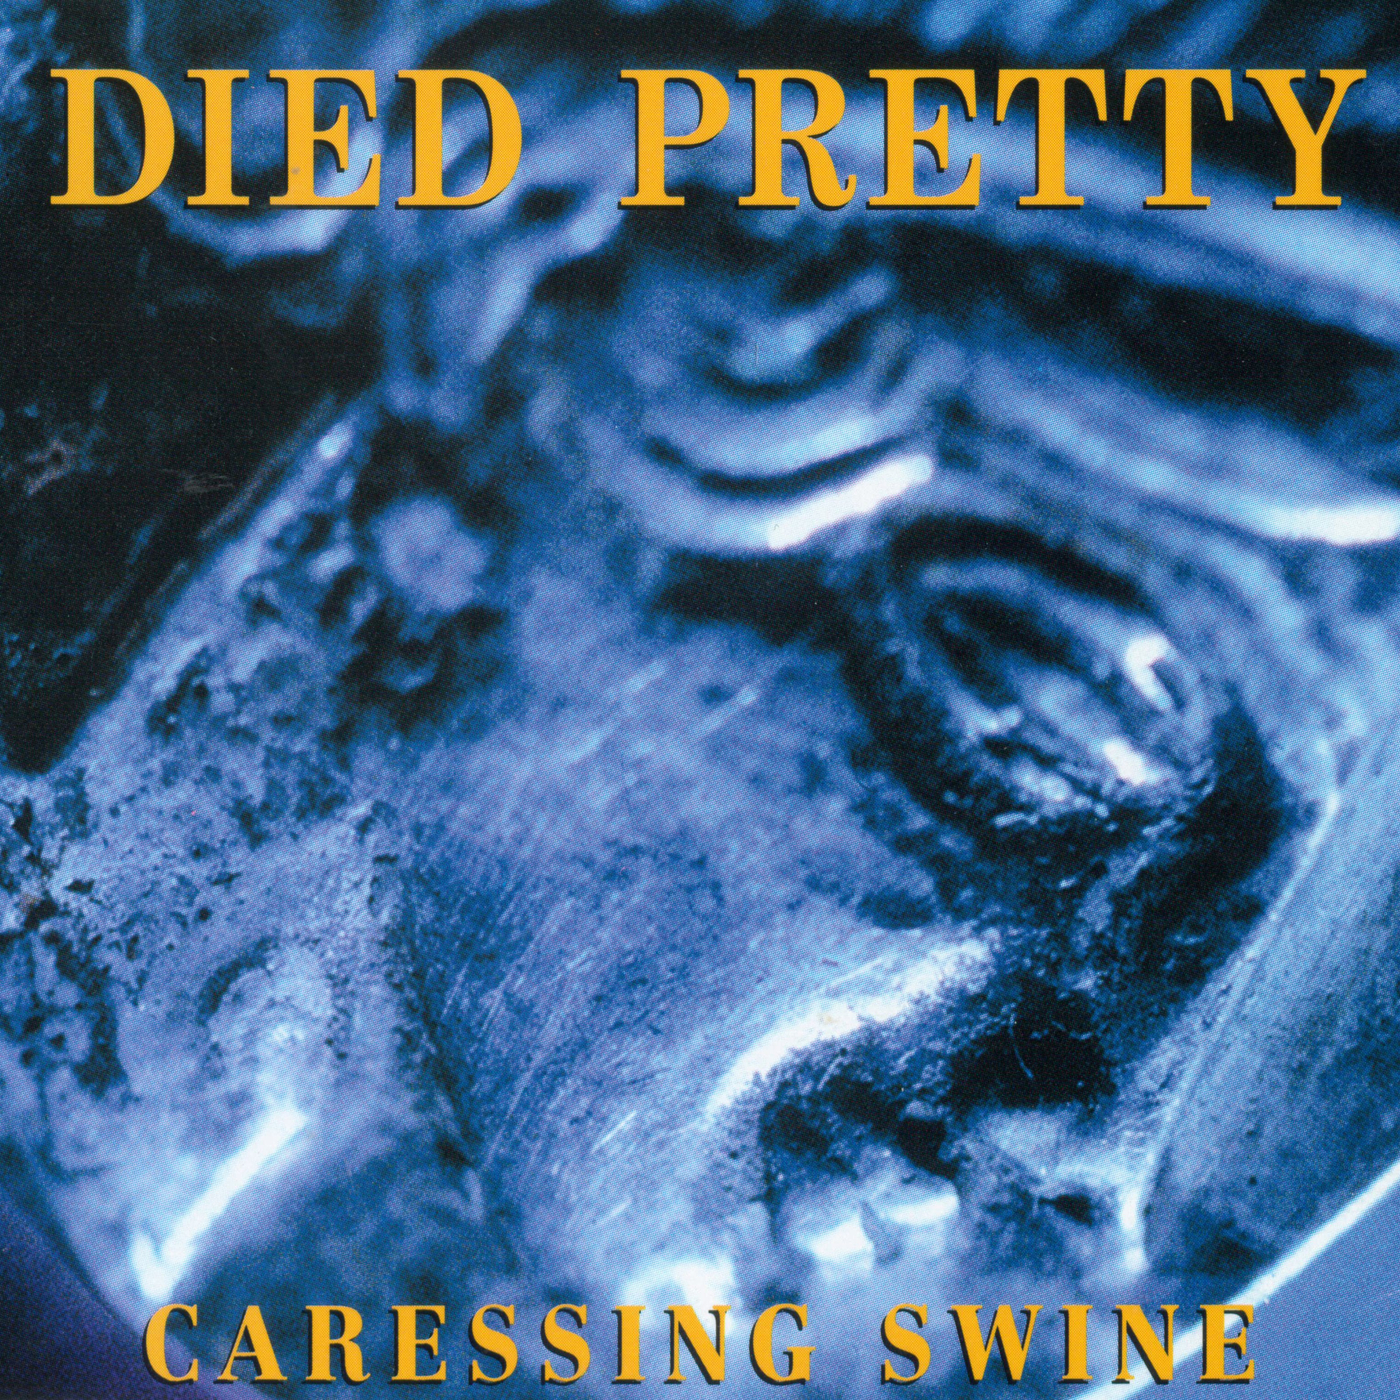 Caressing Swine - Died Pretty